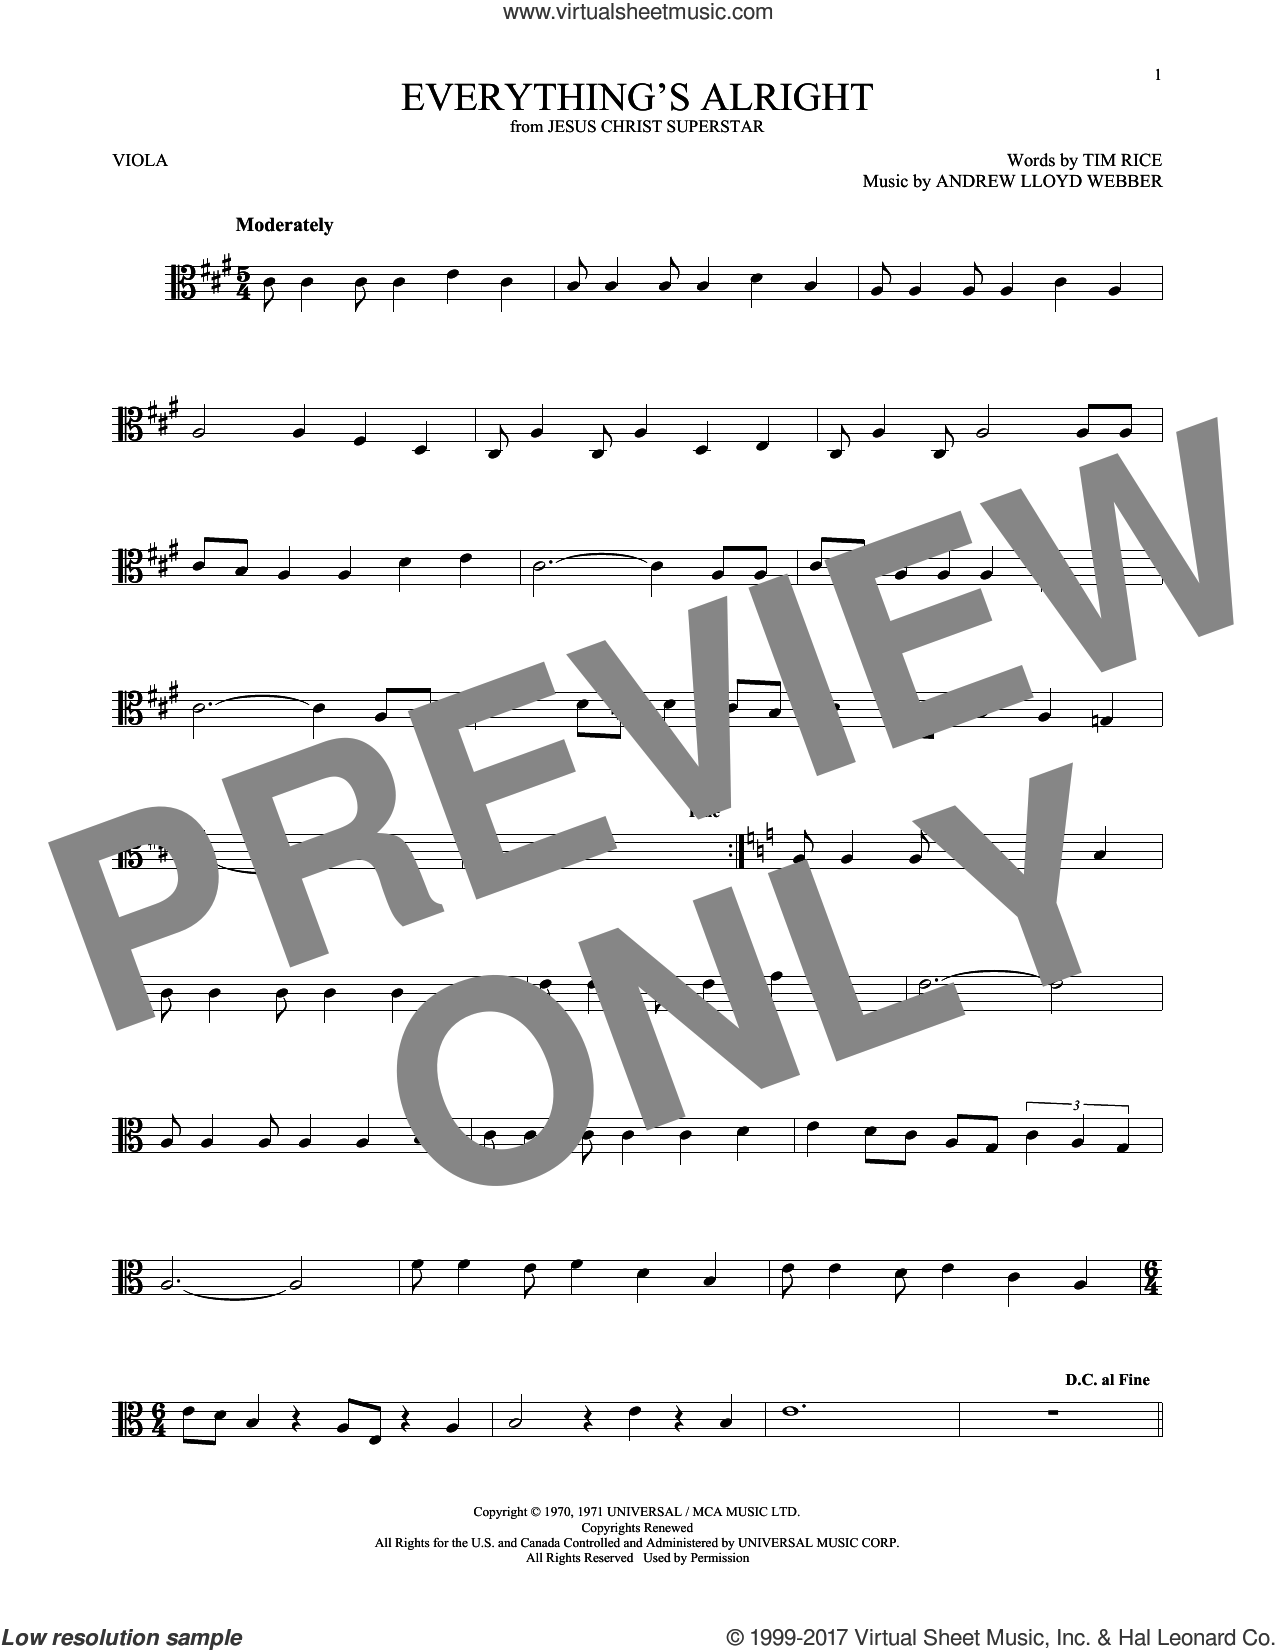 Everything's Alright (from Jesus Christ Superstar) sheet music for viola solo by Andrew Lloyd Webber, Yvonne Elliman and Tim Rice, intermediate skill level